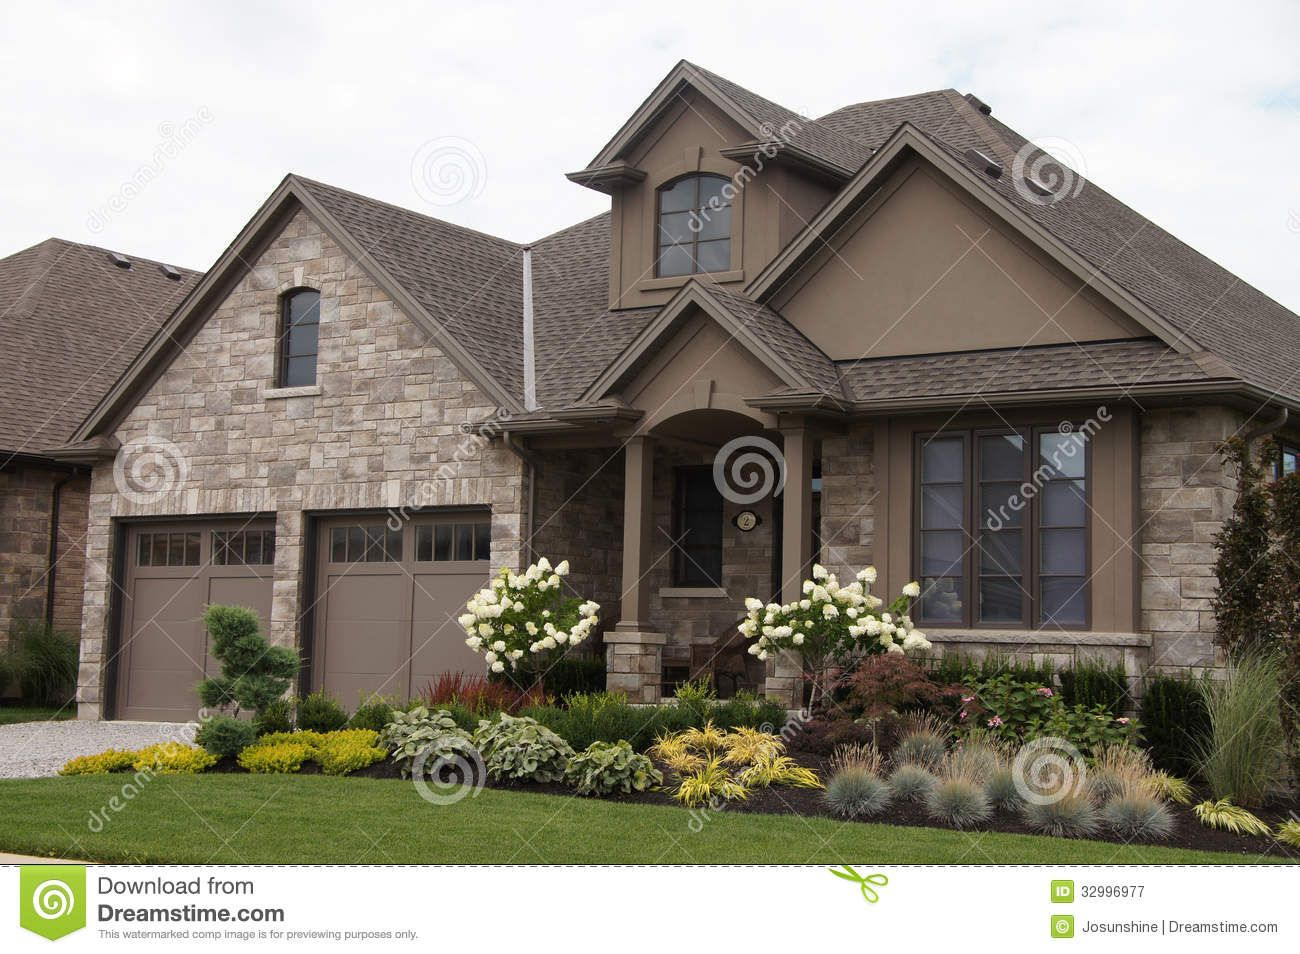 Exterior paint schemes stucco - The Perfect Paint Schemes For House Exterior